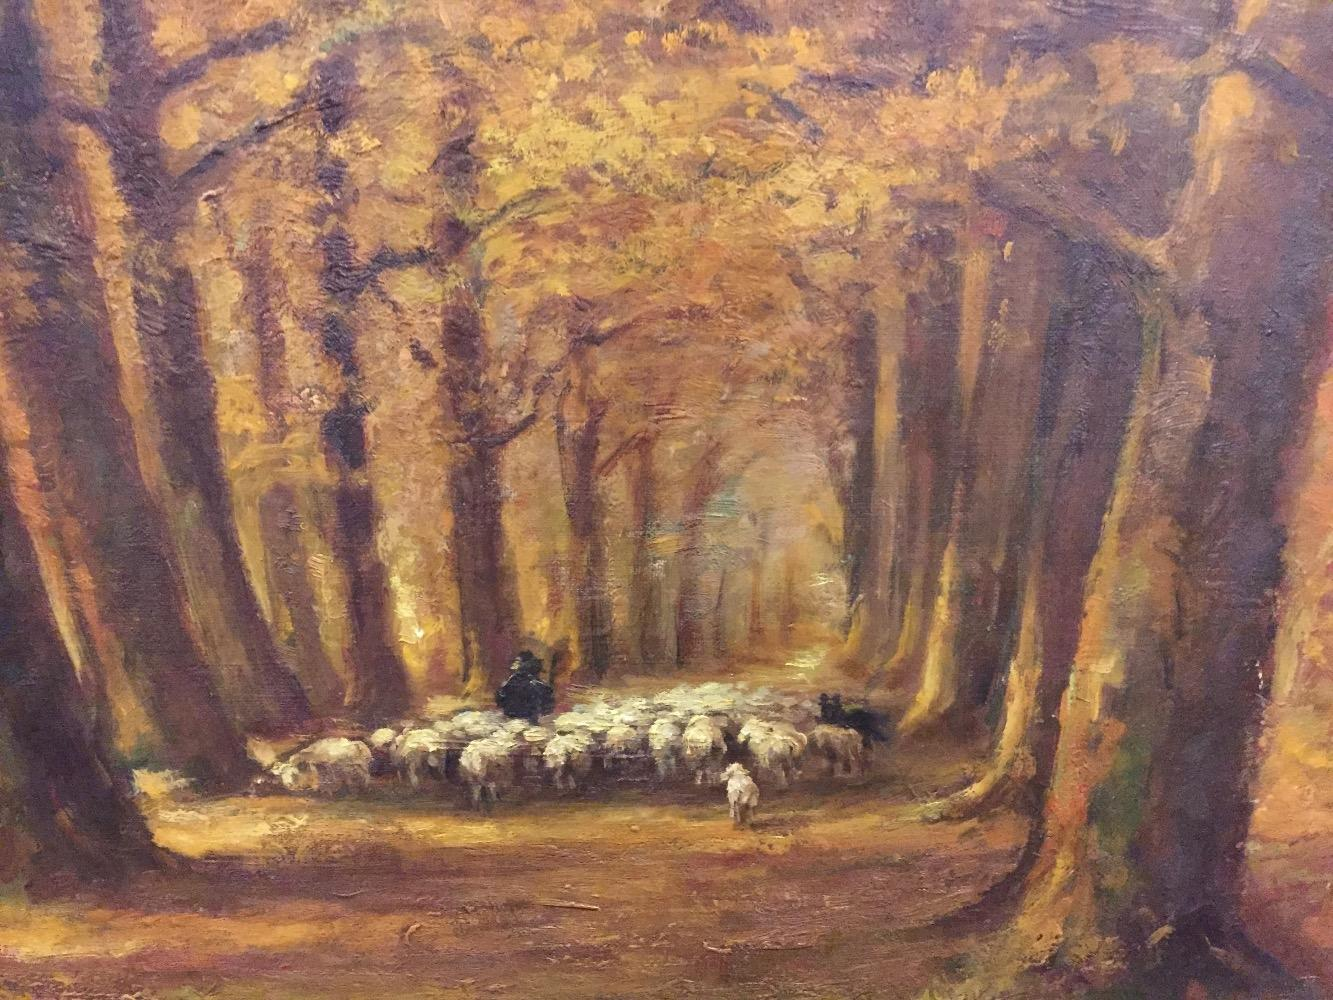 Shepherd with sheep in the forest